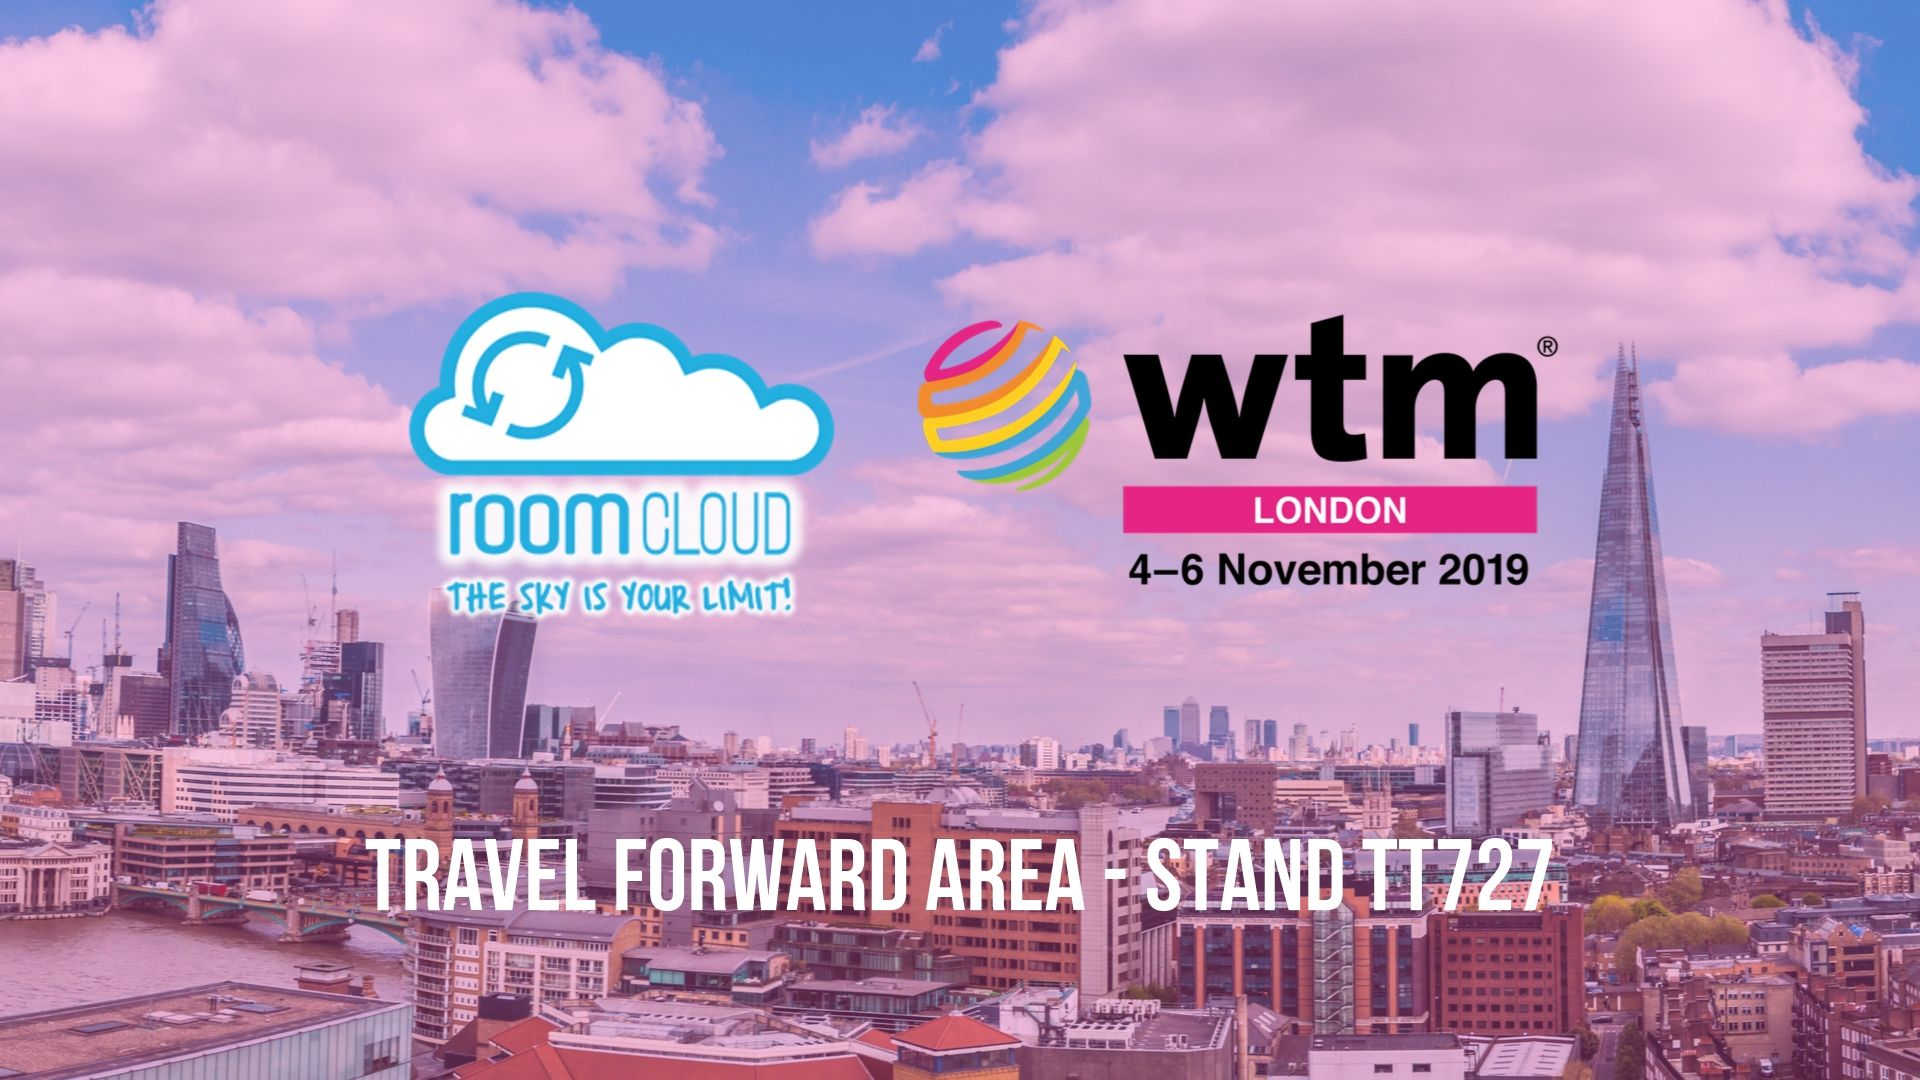 RoomCloud will attend WTM 2019 in London